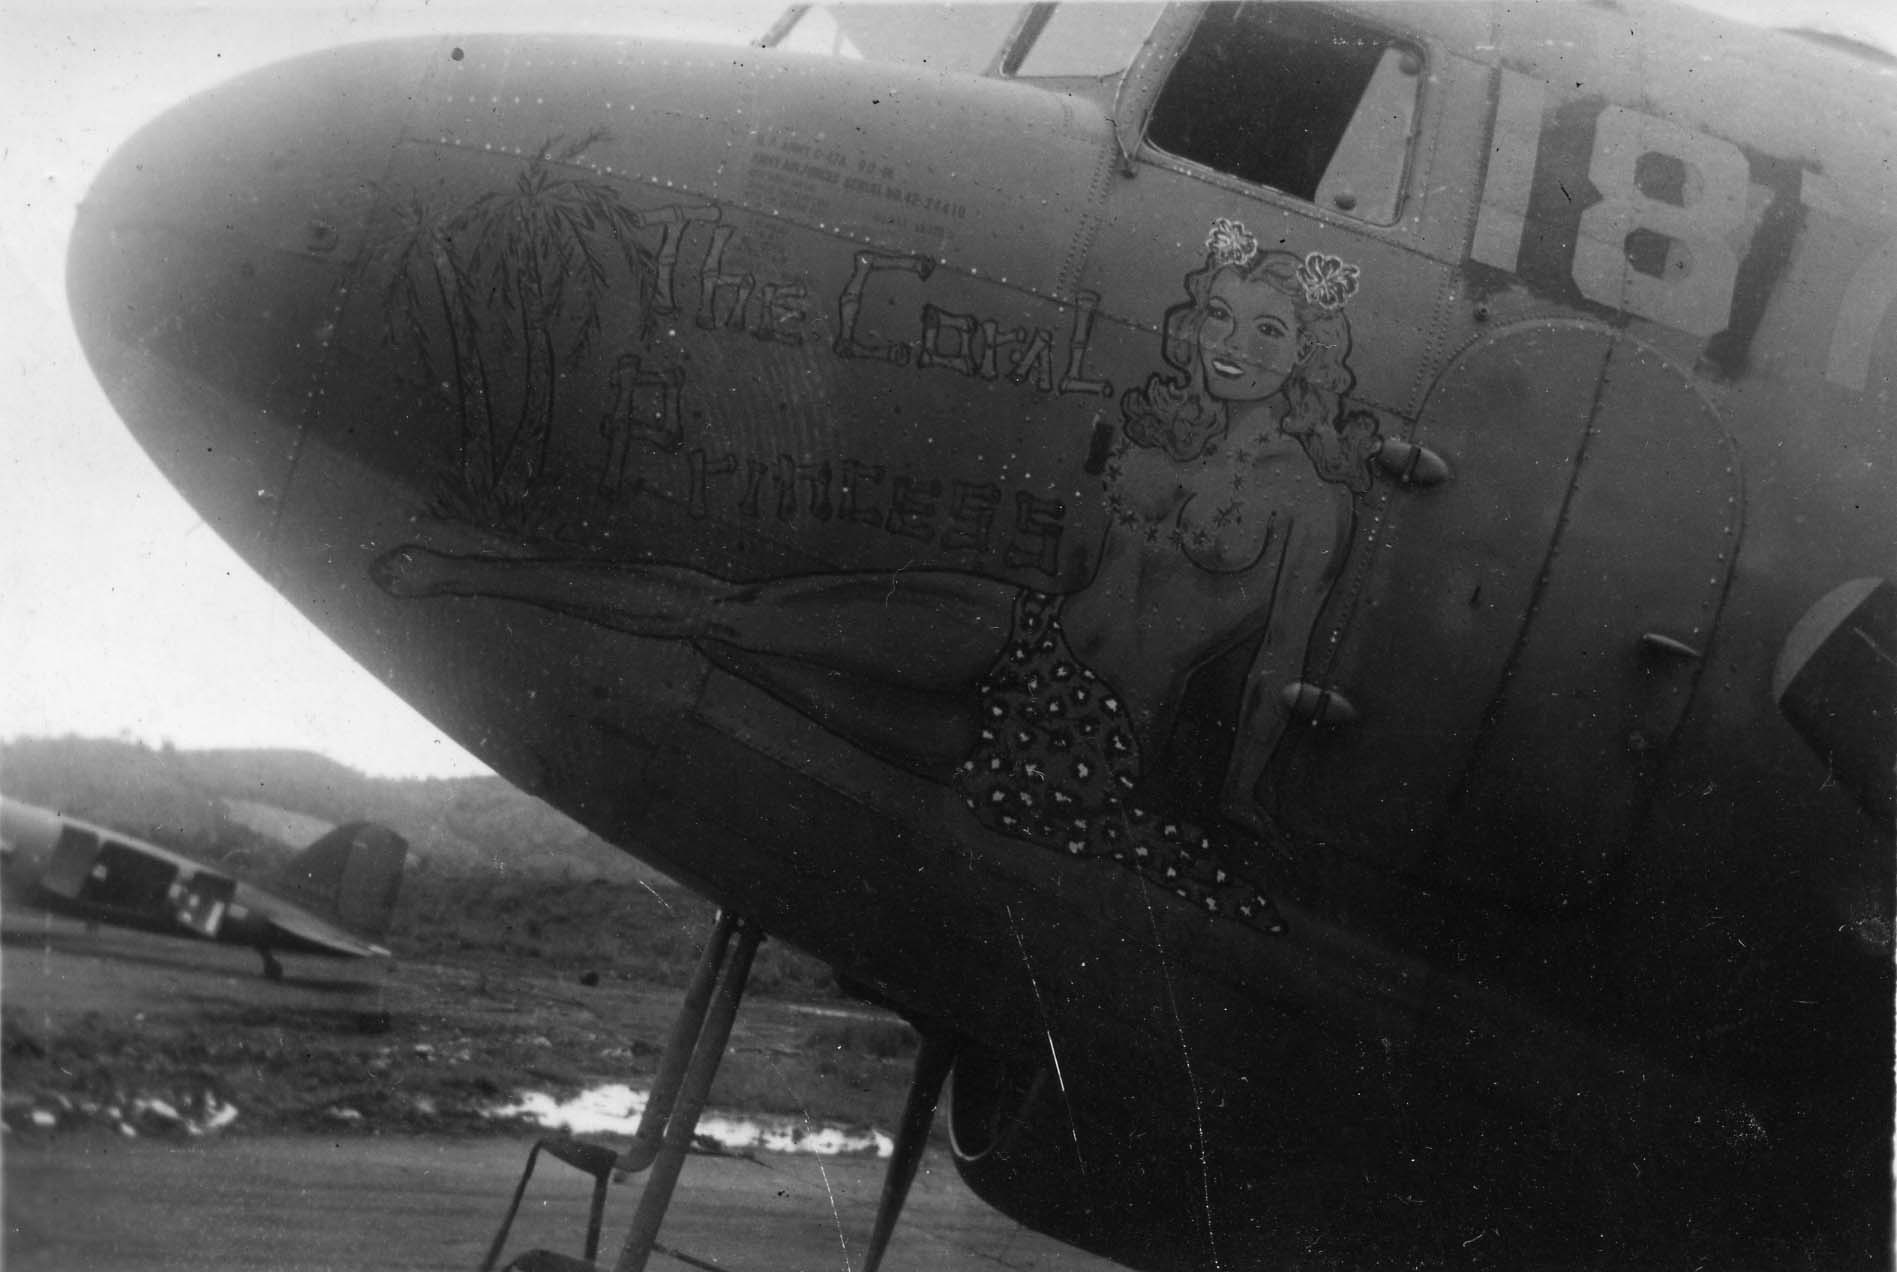 Coral Princess : C-47 : Planes from Unknown Groups or Squadrons : Sharpe 8 (Thomas Sharpe Collection)